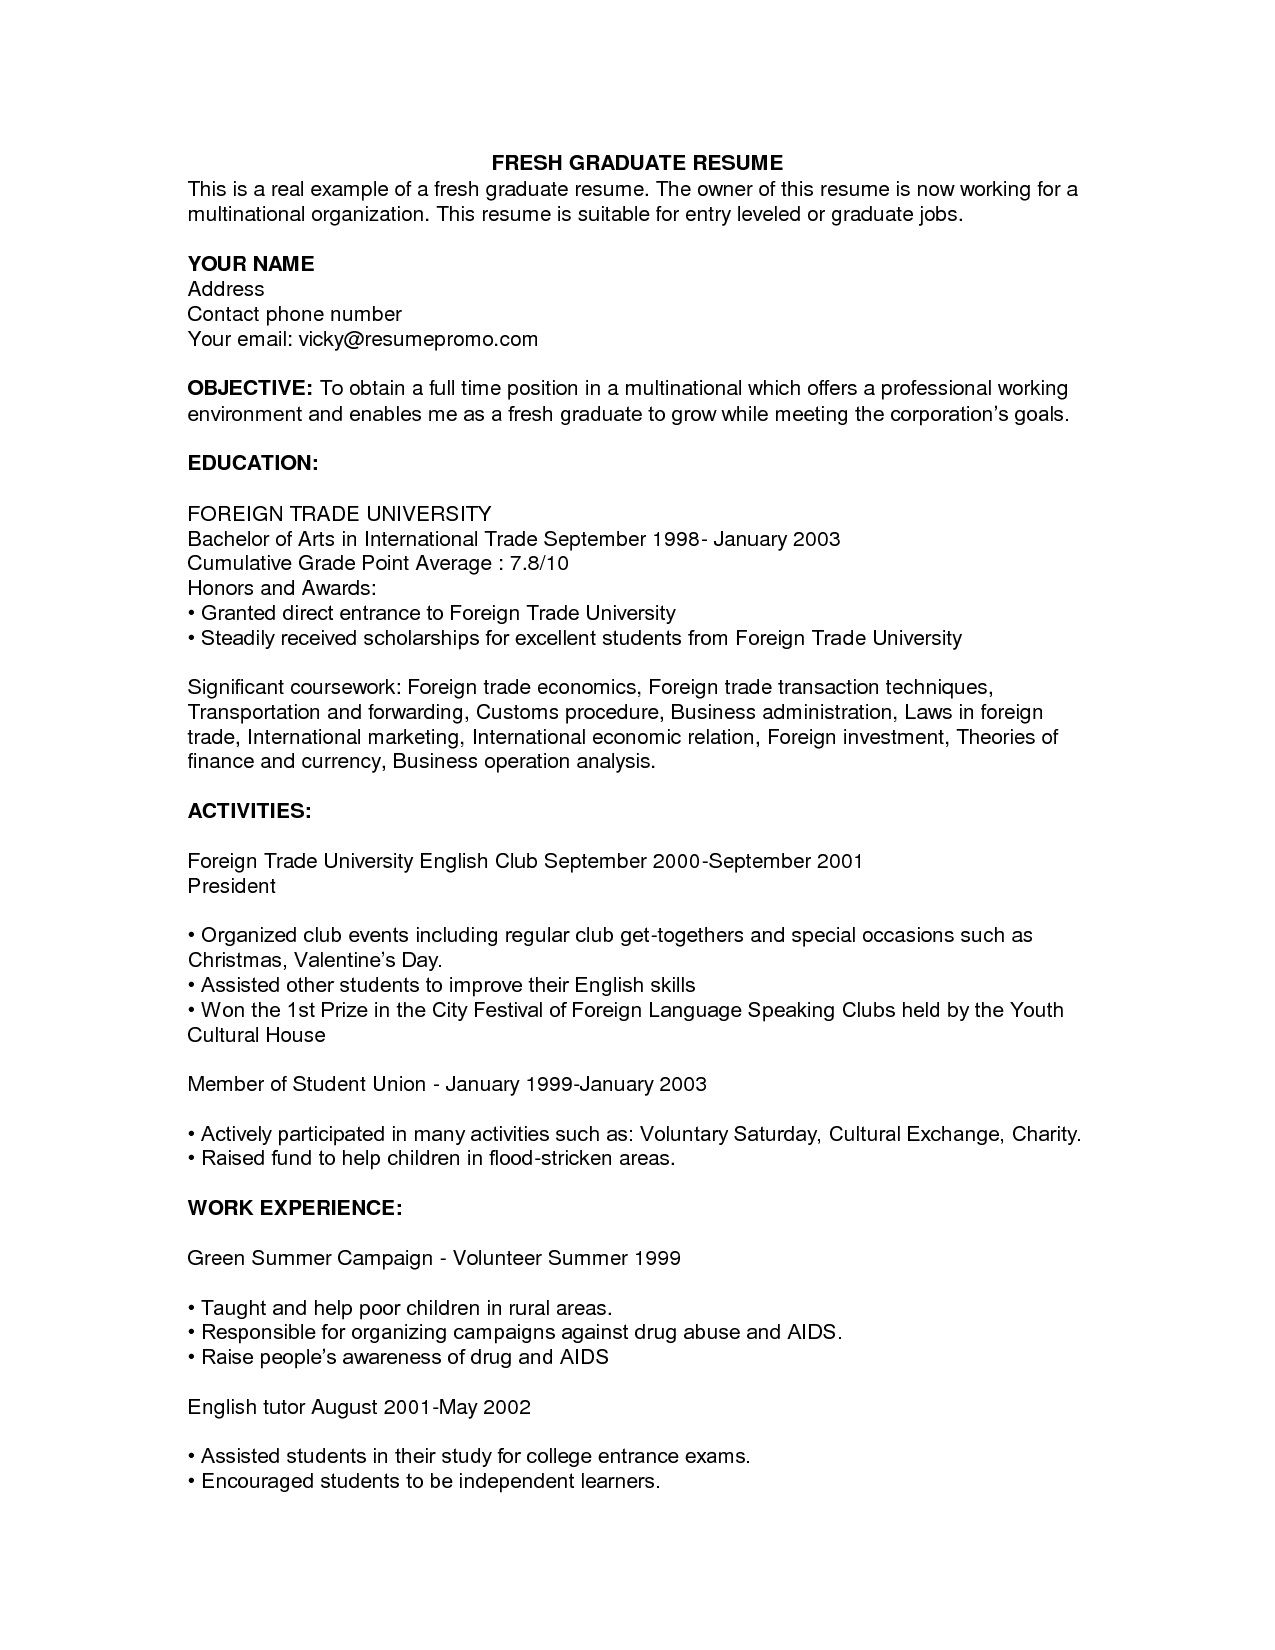 example of resume for fresh graduate httpjobresumesamplecom249 - Sample Resume Graduate School